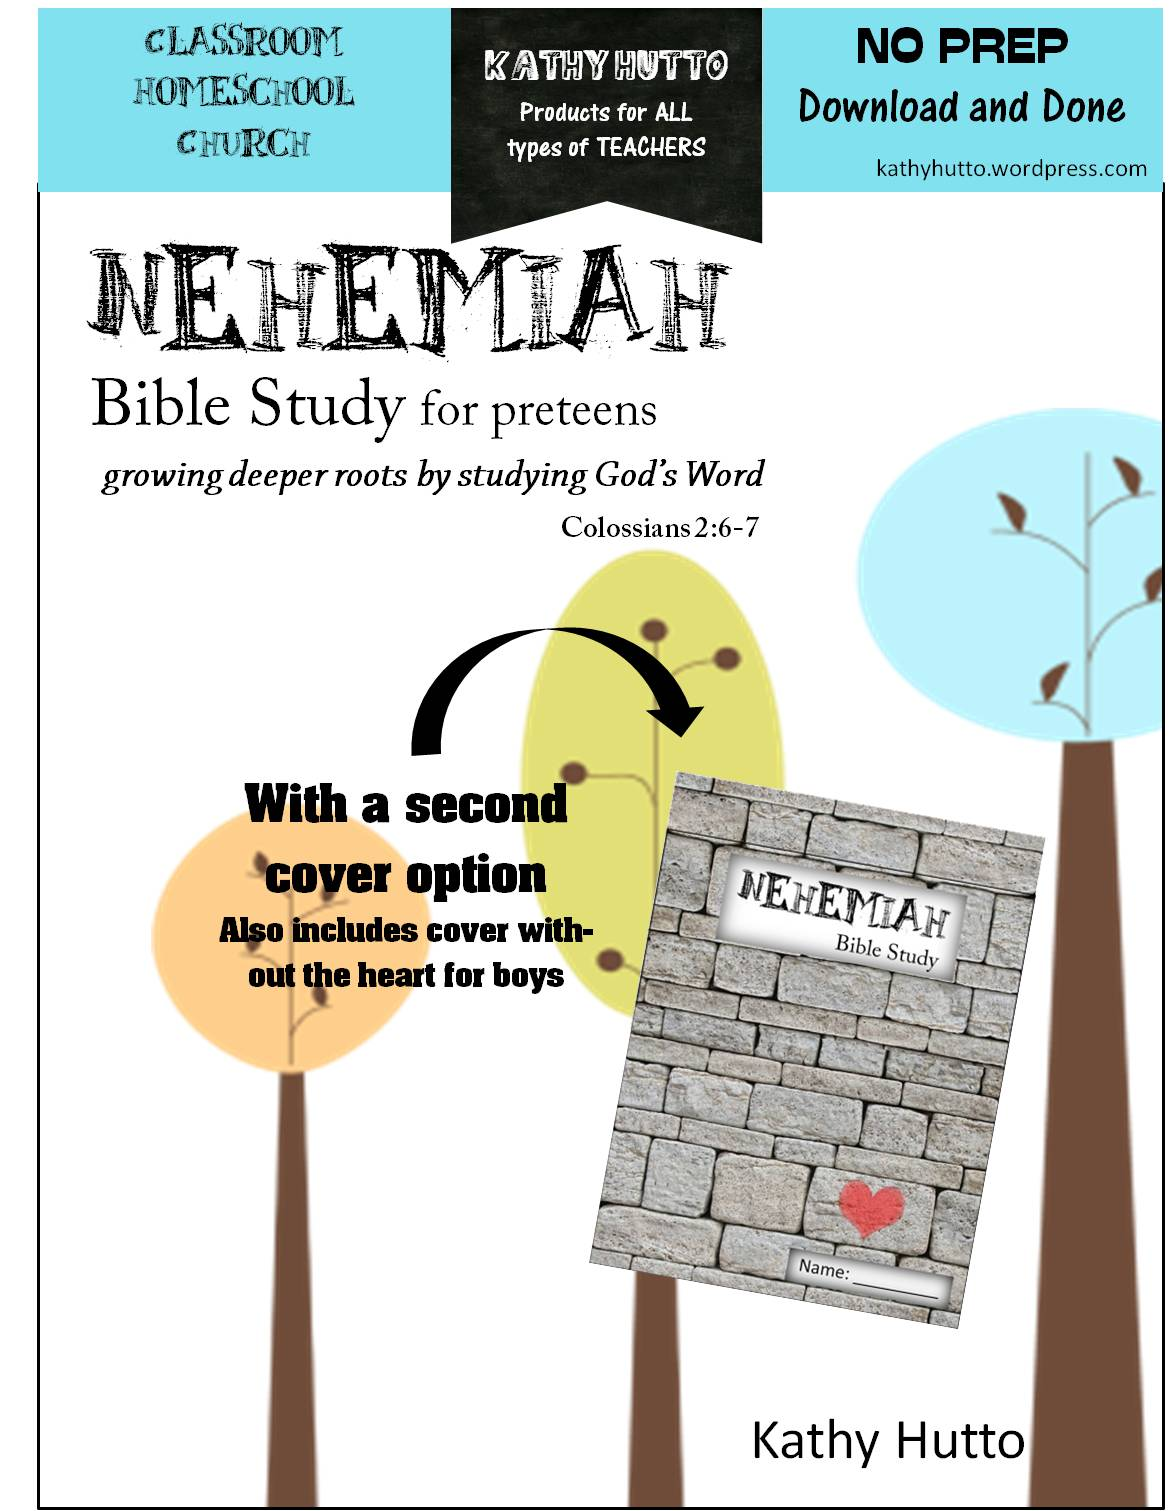 Brand New Bible Study For Preteens Nehemiah Kathy Hutto